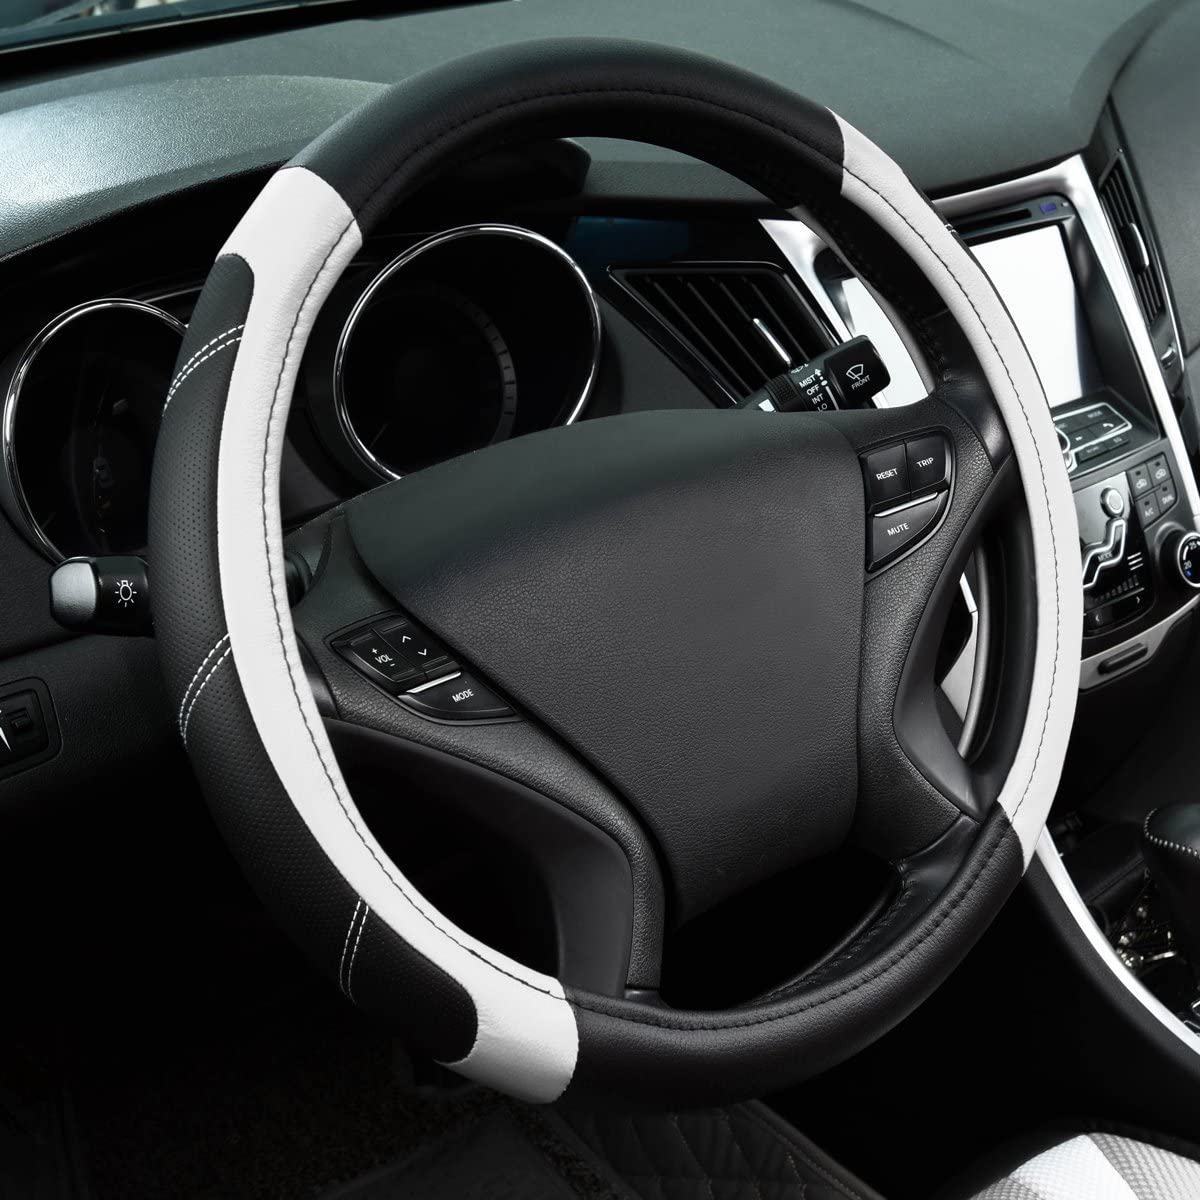 Black And Red CAR PASS Line Rider Leather Universal Fit Steering Wheel Cover,Fits for Trucks,Suvs,Cars,Sedan